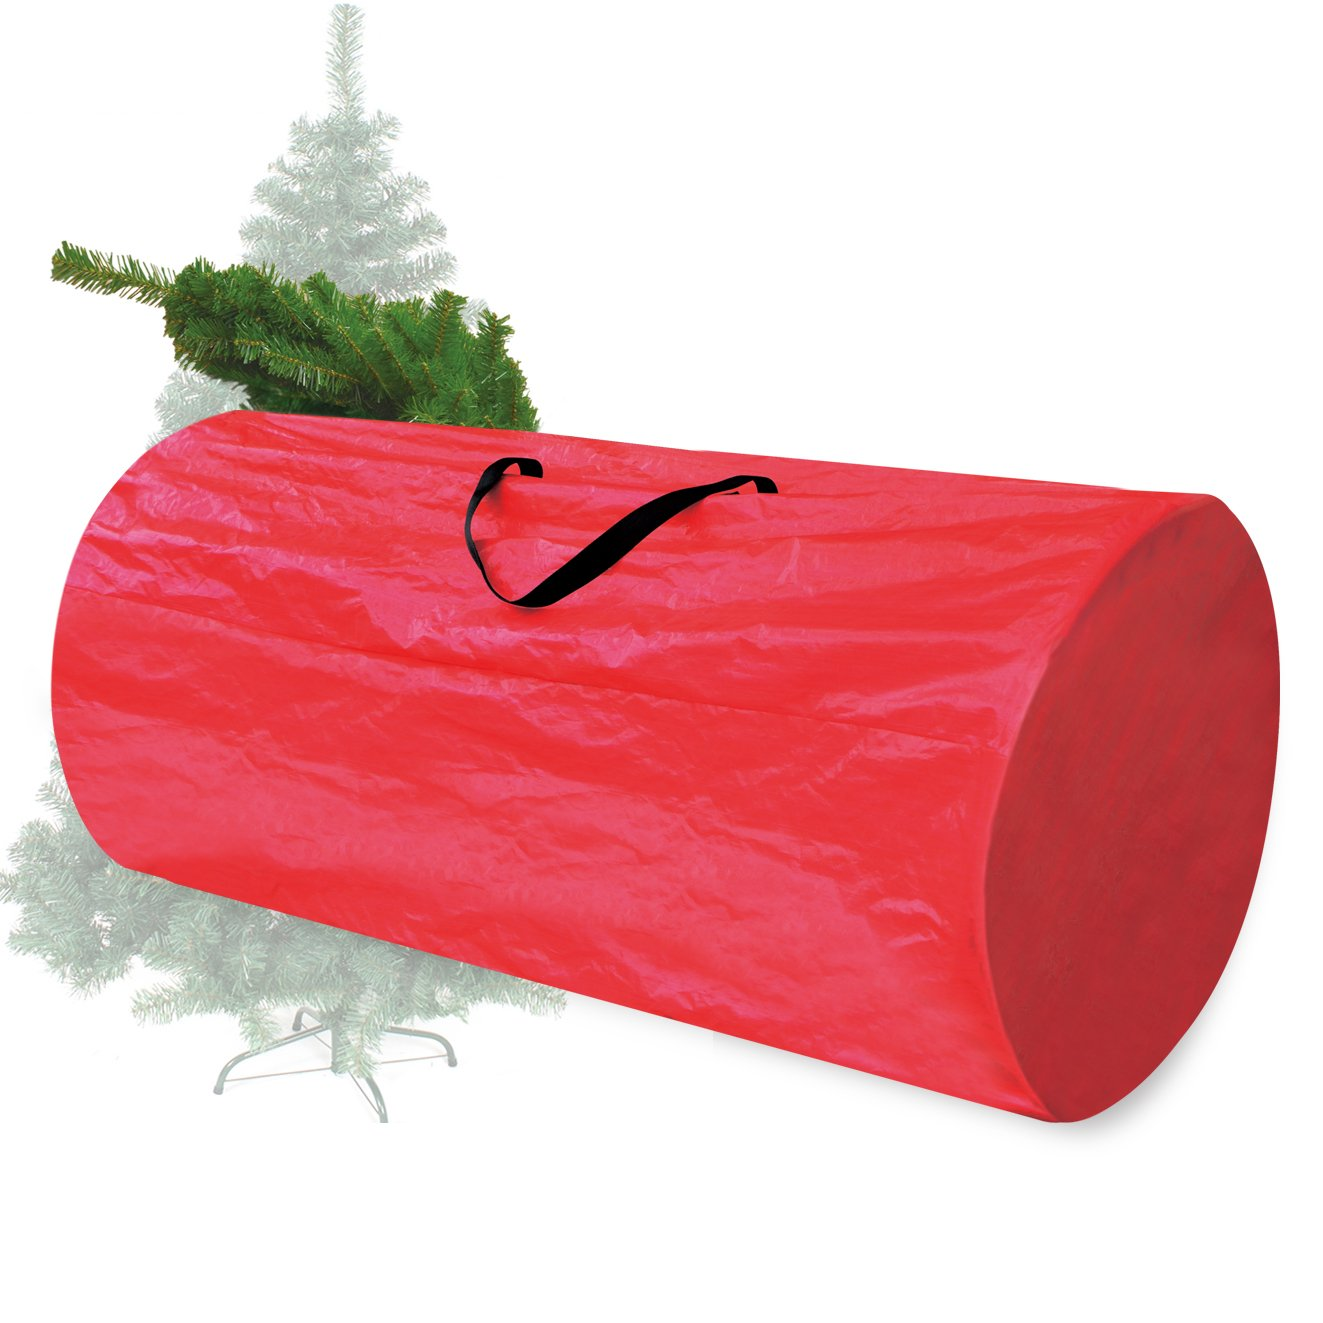 BenefitUSA Heavy Duty Large Artificial Christmas Tree Carry Storage Bag Holiday Clean Up to 8' (Red) sunny outdoor inc ZH0065-Red